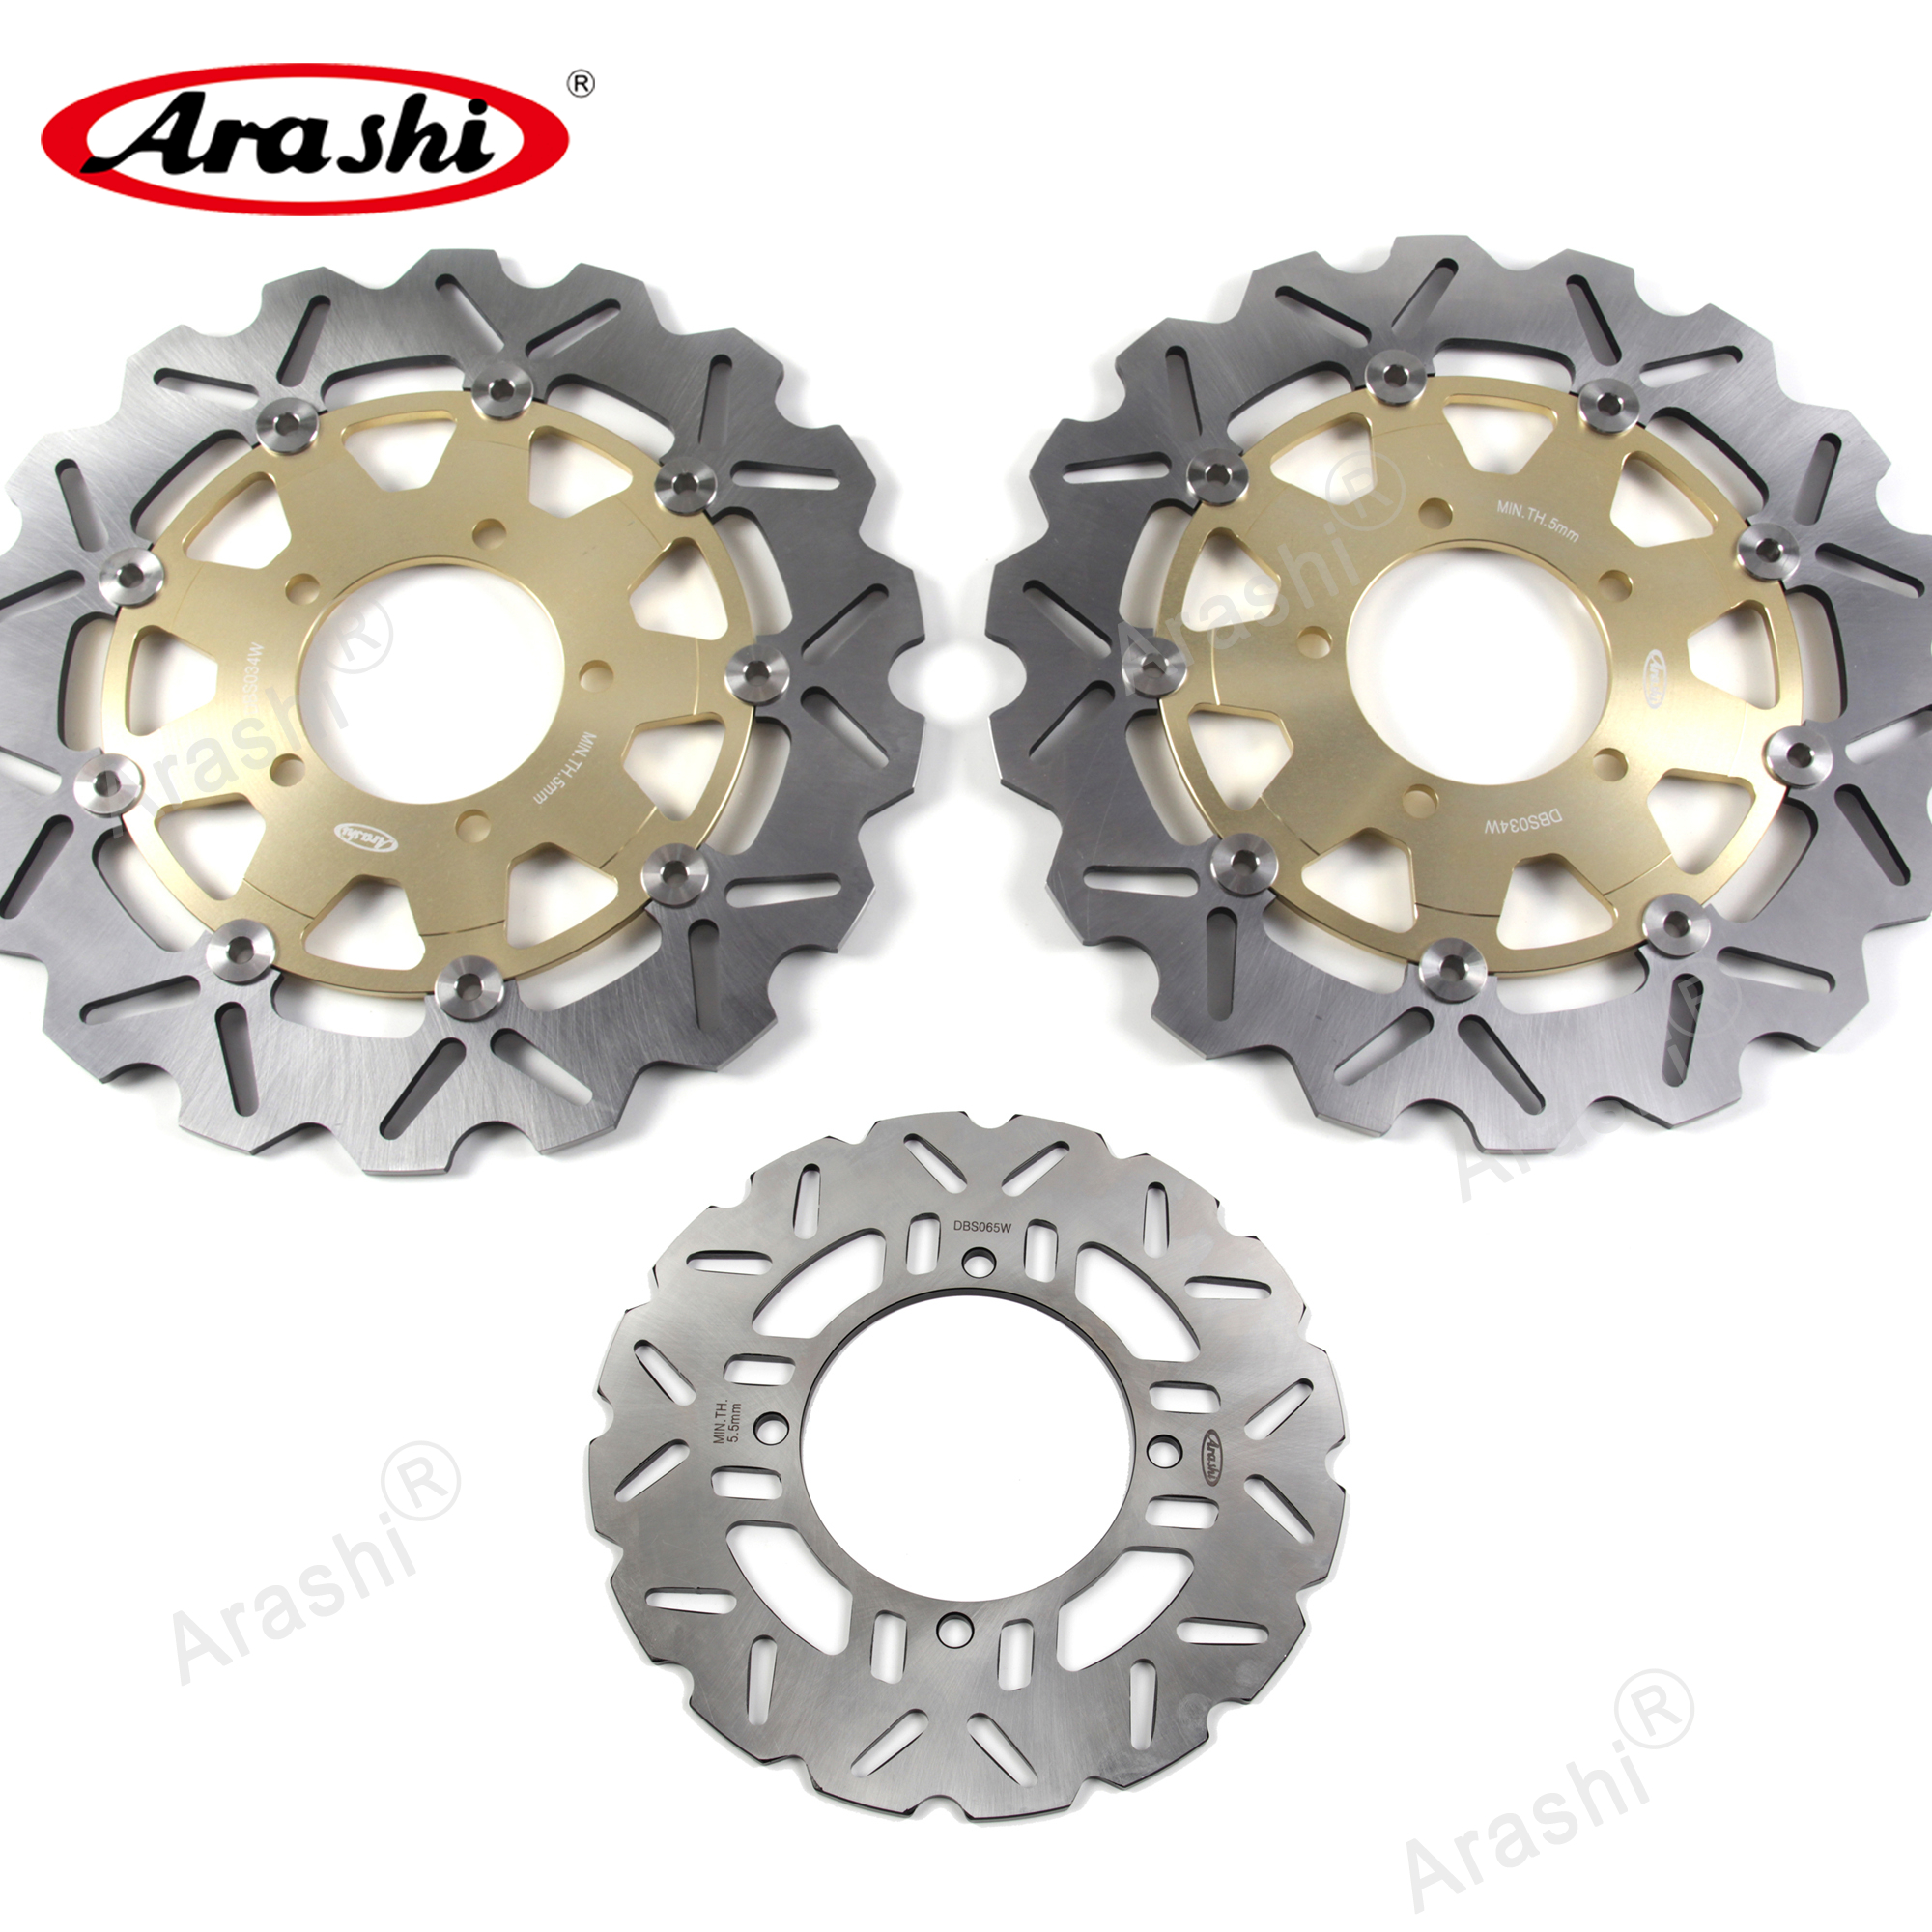 Arashi 1 Set For <font><b>KAWASAKI</b></font> <font><b>Z750</b></font> / <font><b>Z750</b></font> ABS 2007-2012 CNC Front Rear <font><b>Brake</b></font> <font><b>Disc</b></font> Disks Rotors Z 750 2007 2008 2009 2010 2011 2012 image